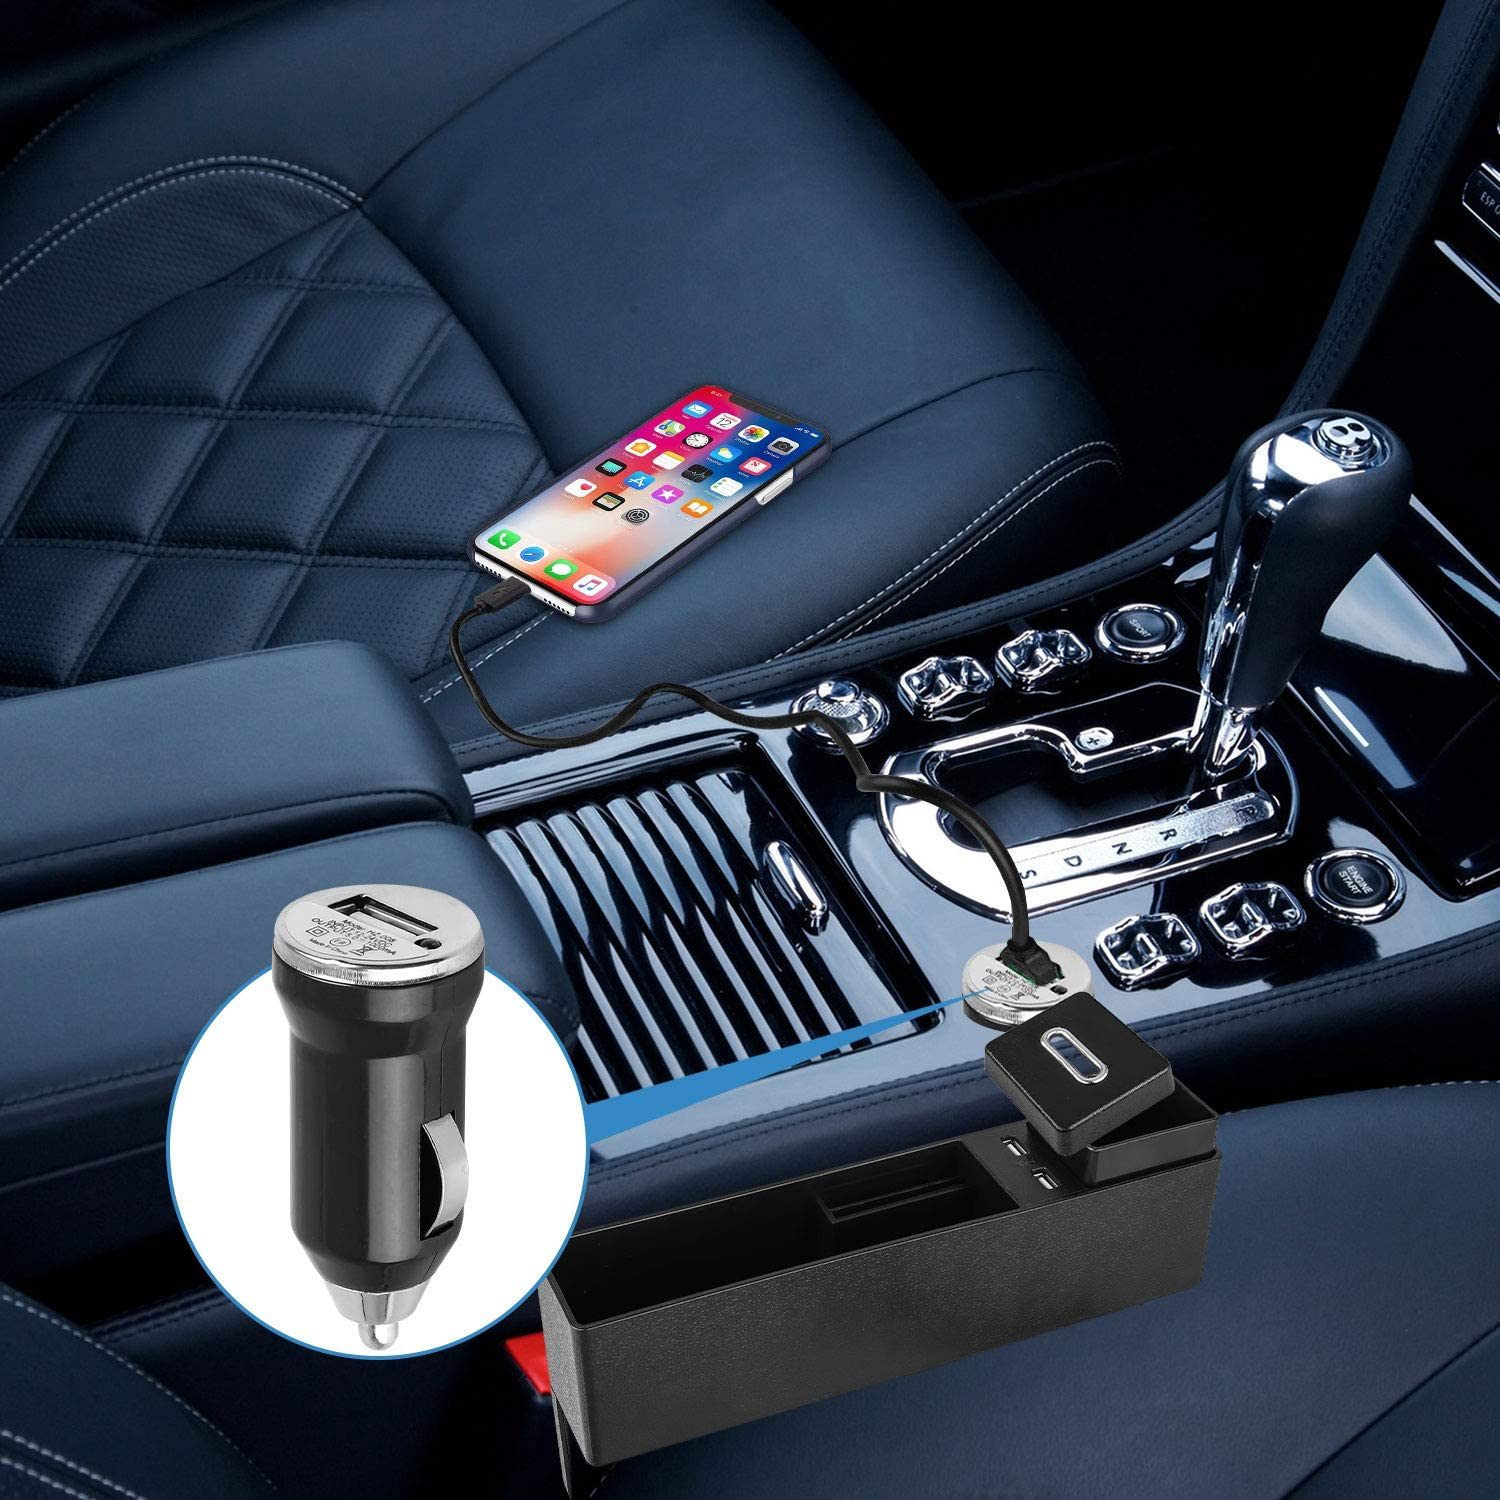 with Coin Box Console Side Pocket Seat Crevice Storage Seat Gap Pocket Organizer Multifunctional Car Seat Organizer Front Seat Gap Filler 2 USB Charging Ports Automotive Interior Accessories-Black